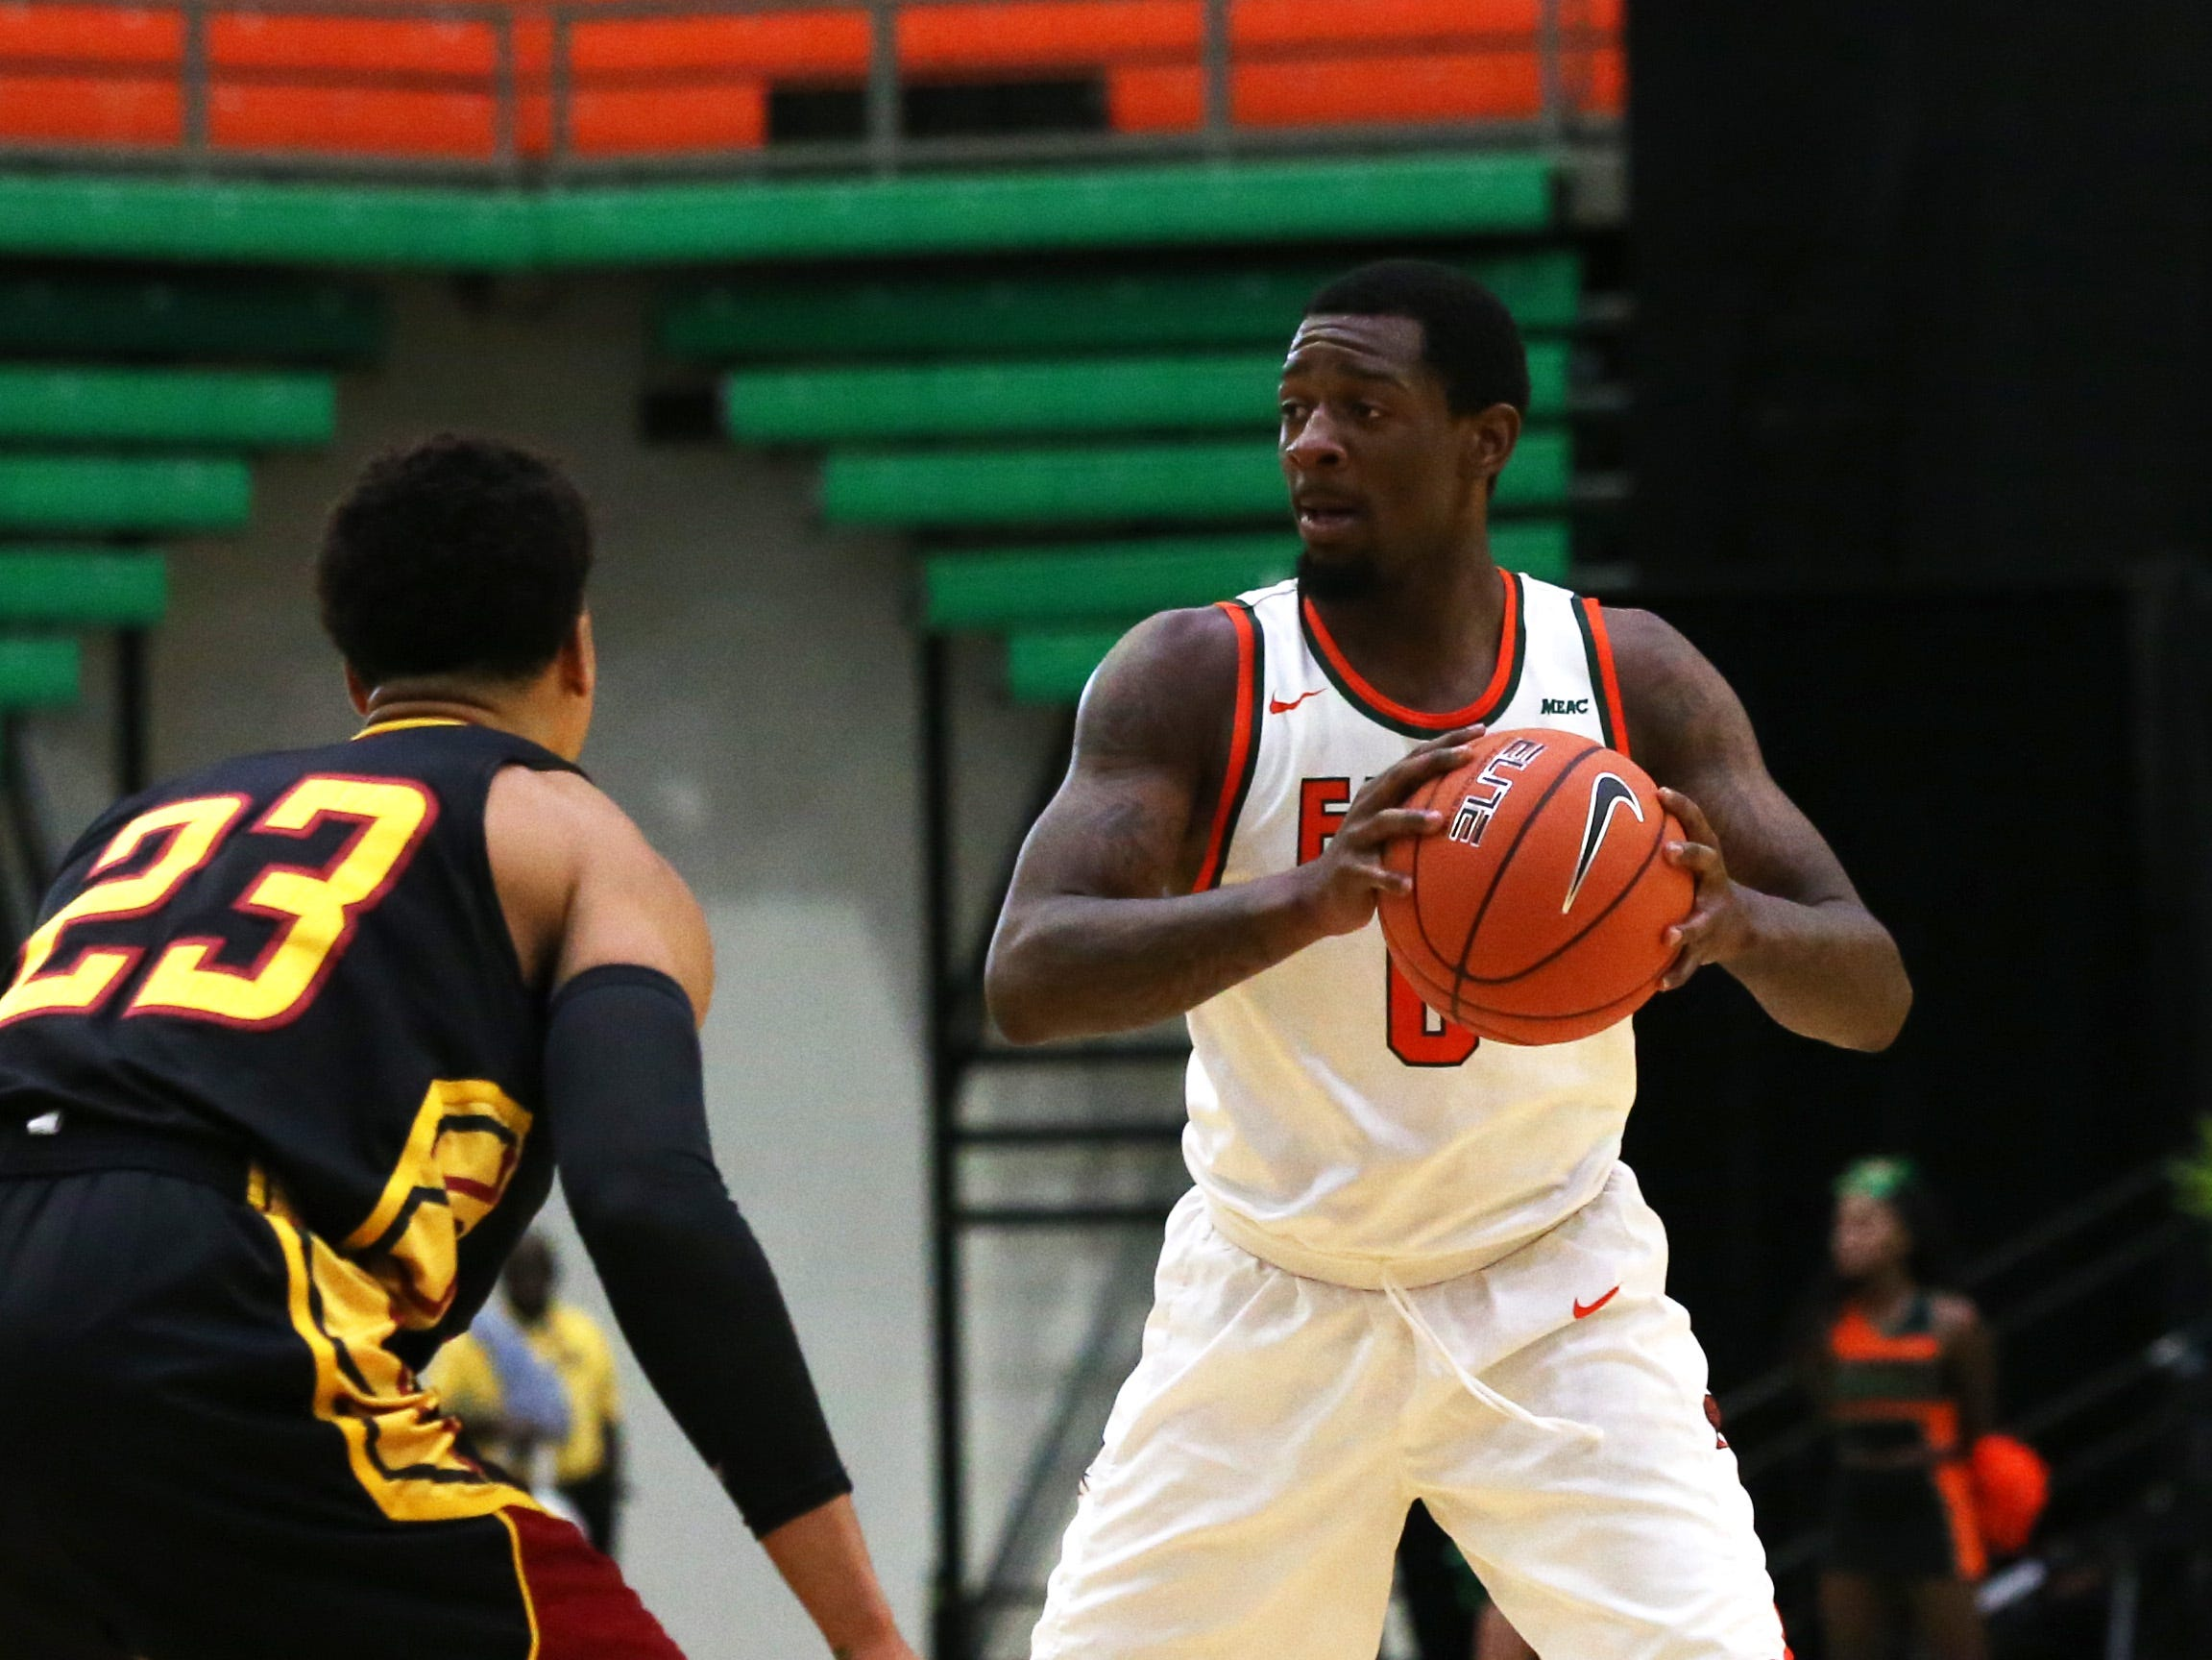 Florida A&M Rattlers forward Tracy Hector Jr. (0) looks to pass as the FAMU Rattlers take on the Tuskegee Golden Tigers in their first home game of the season in the Lawson Center, Saturday, Nov. 10, 2018.